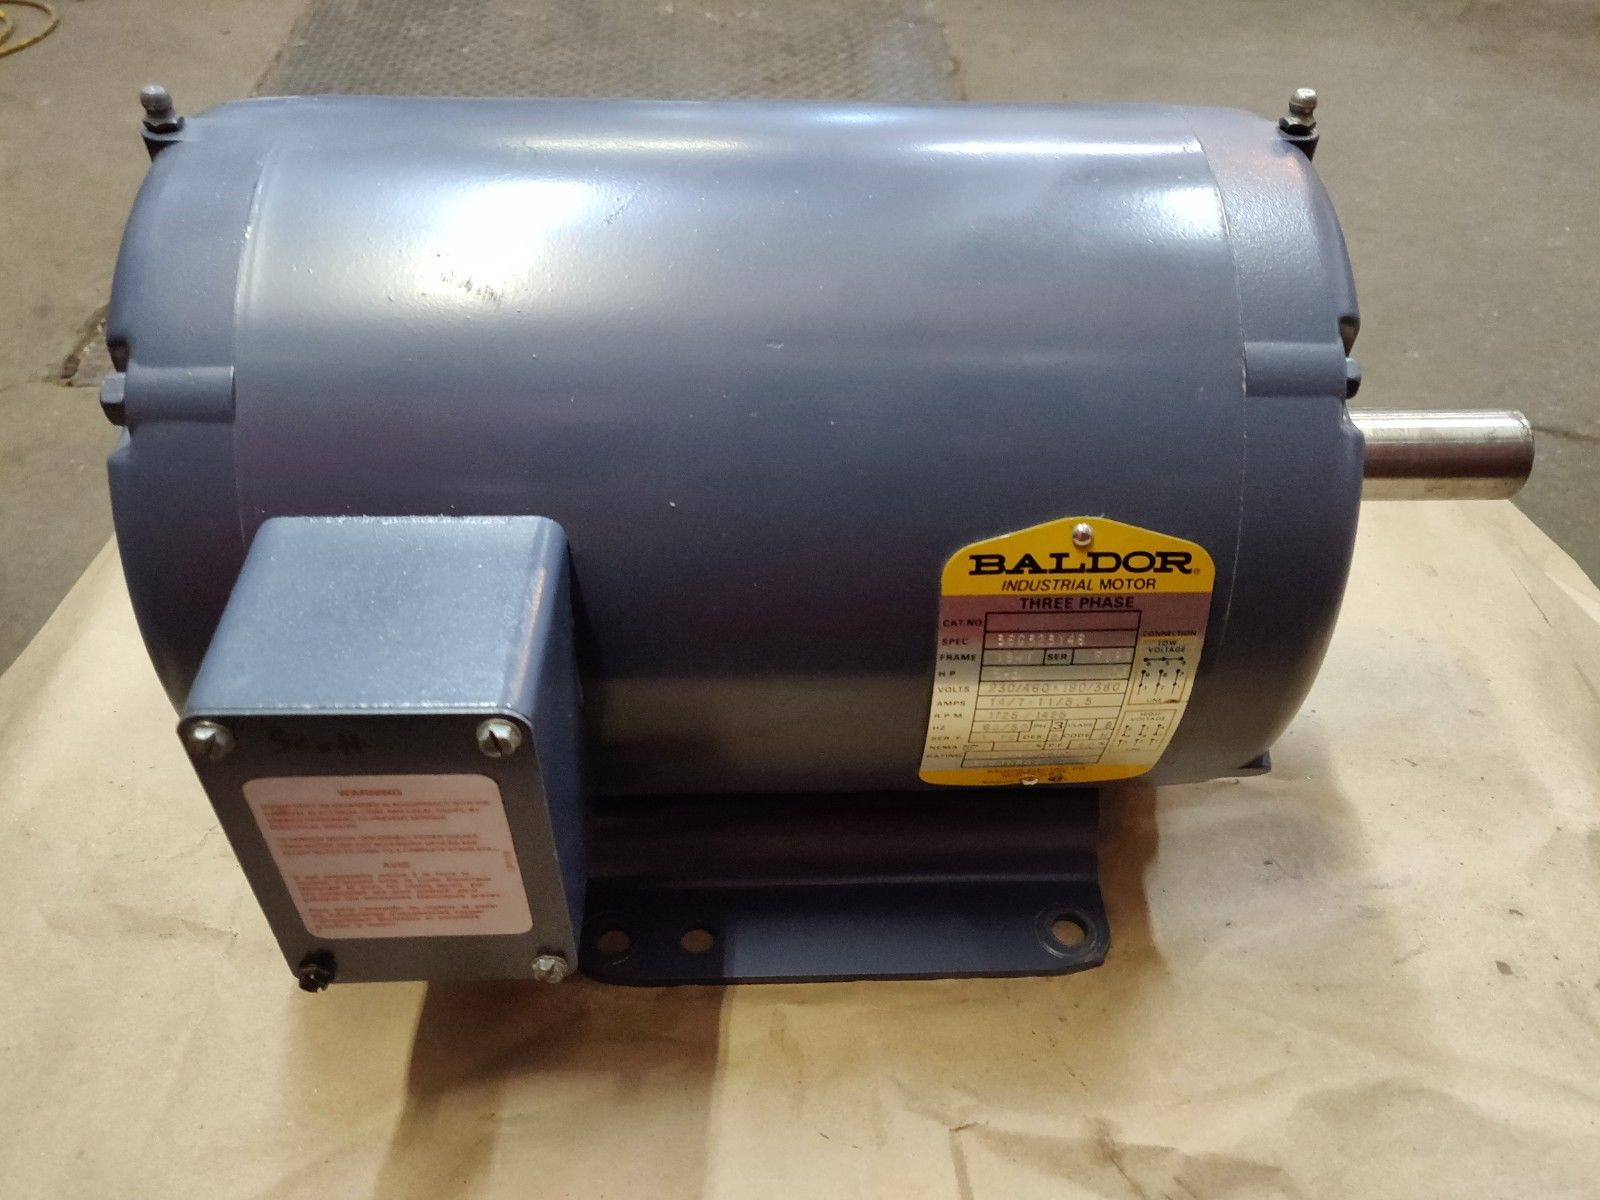 Baldor 3-Phase Industrial Motor Spec 36G323Y46 - Modified EM3218T